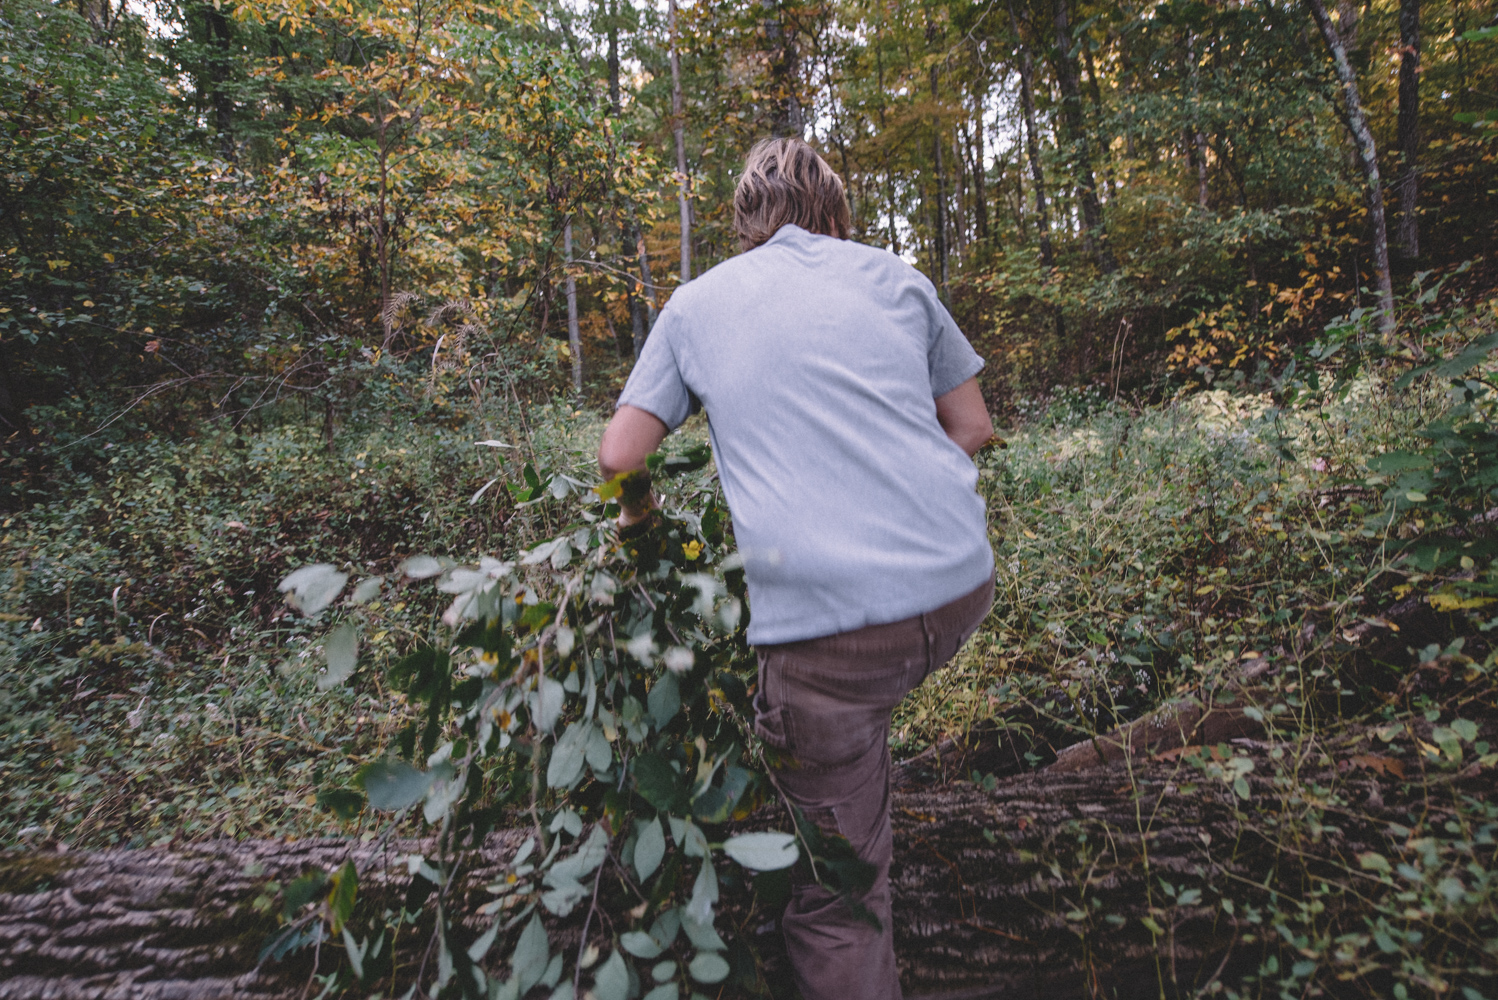 Scratch-Brewing-Co-Foraging-Carbondale-Ava-Illinois-Good-Beer-Hunting-Matt-Sampson-Photography_1-020.jpg